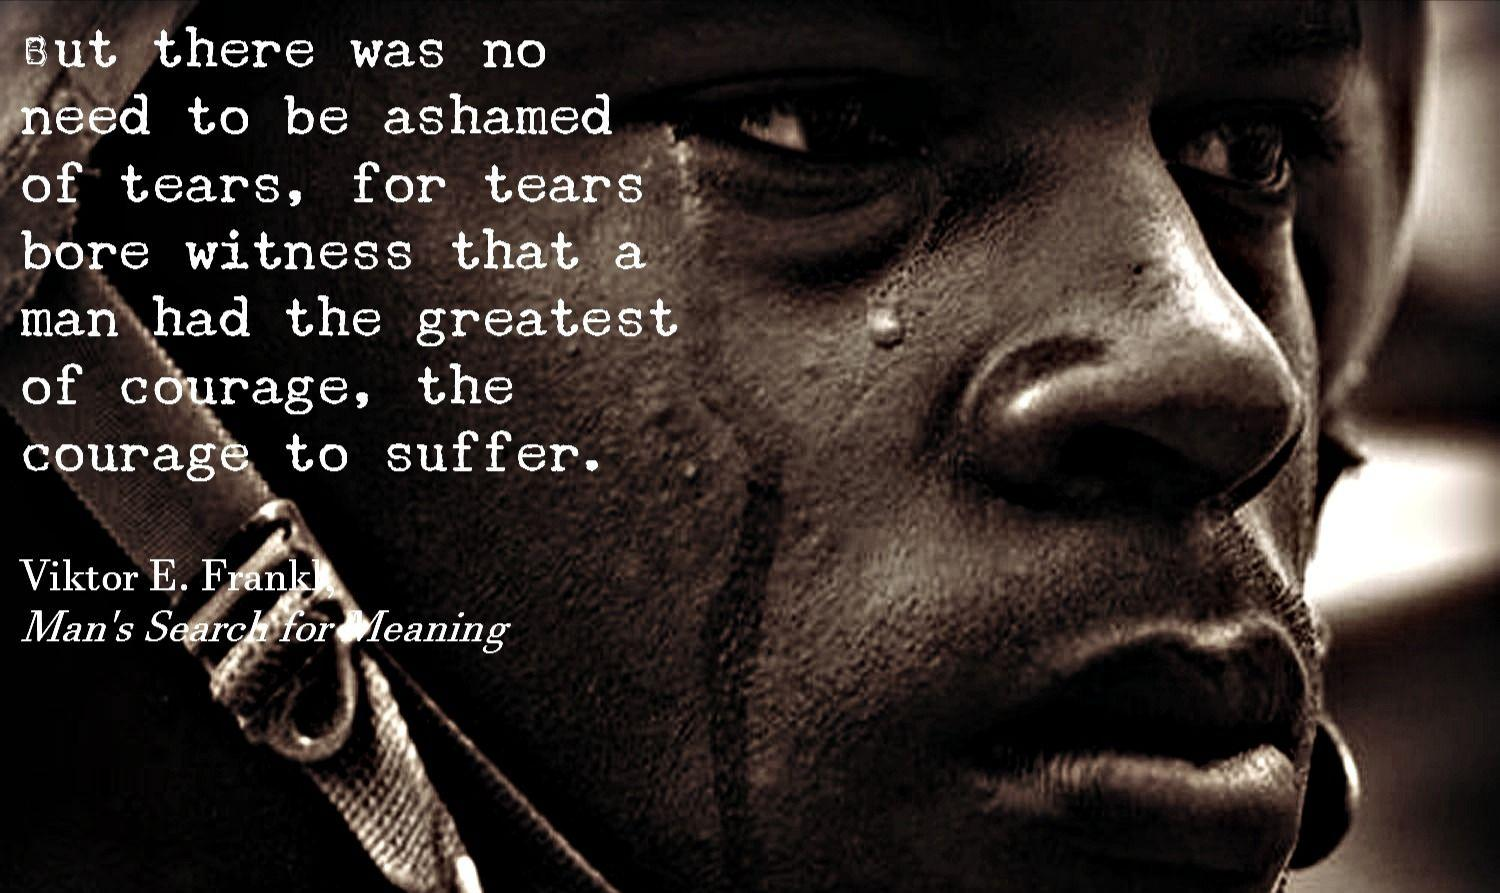 """But there was no need to be ahamed of tears, for tears bore witness that a man had the greatest of courage,the courage to suffer."" Victor E. Frank [1920 X 1080]"